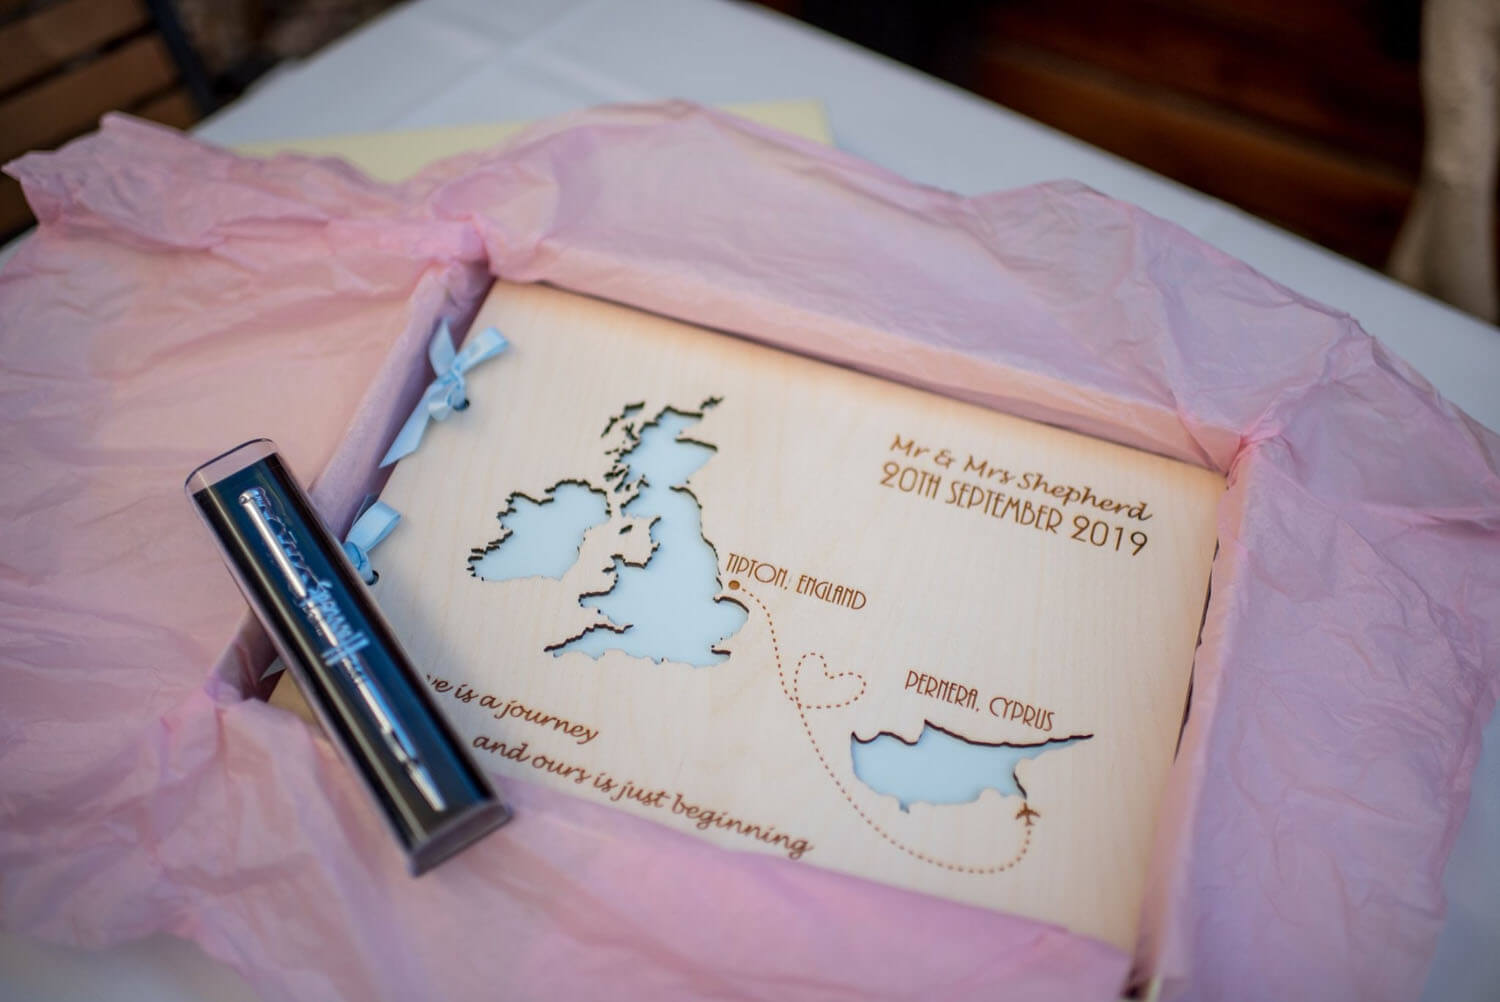 A wooden wedding guest book depicting the UK and Cyprus there the couple got married.